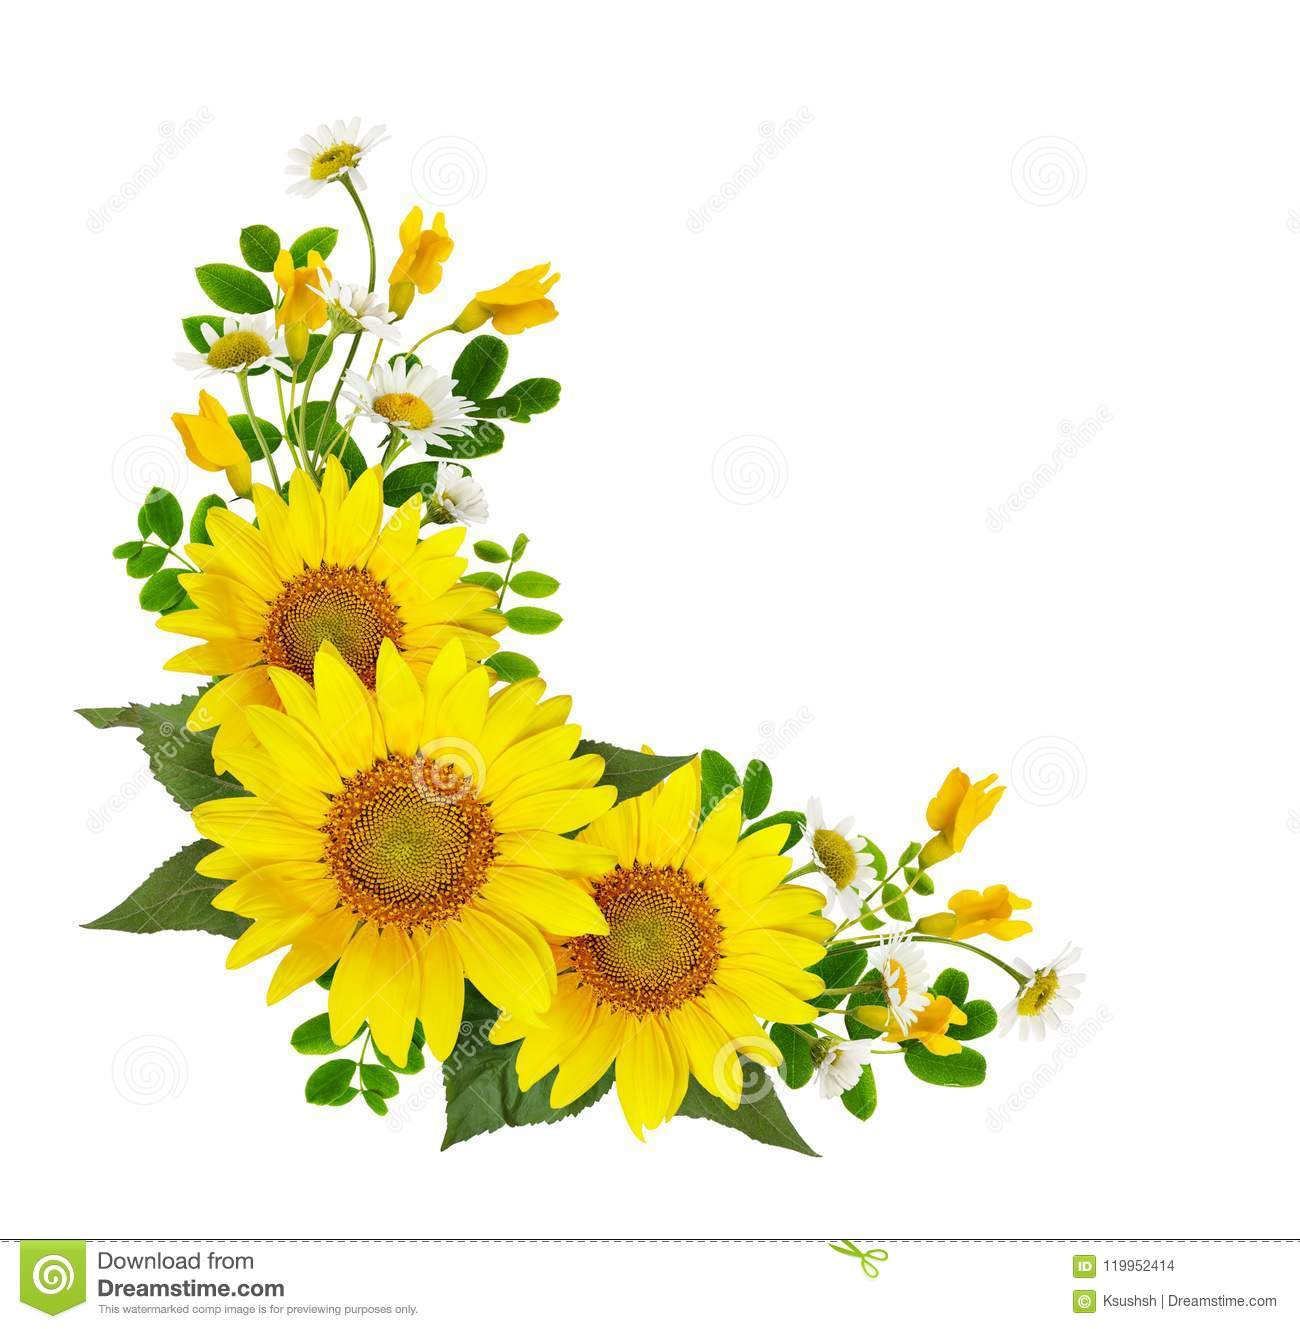 Sunflowers, daisies and acacia flowers and green leaves in a cor